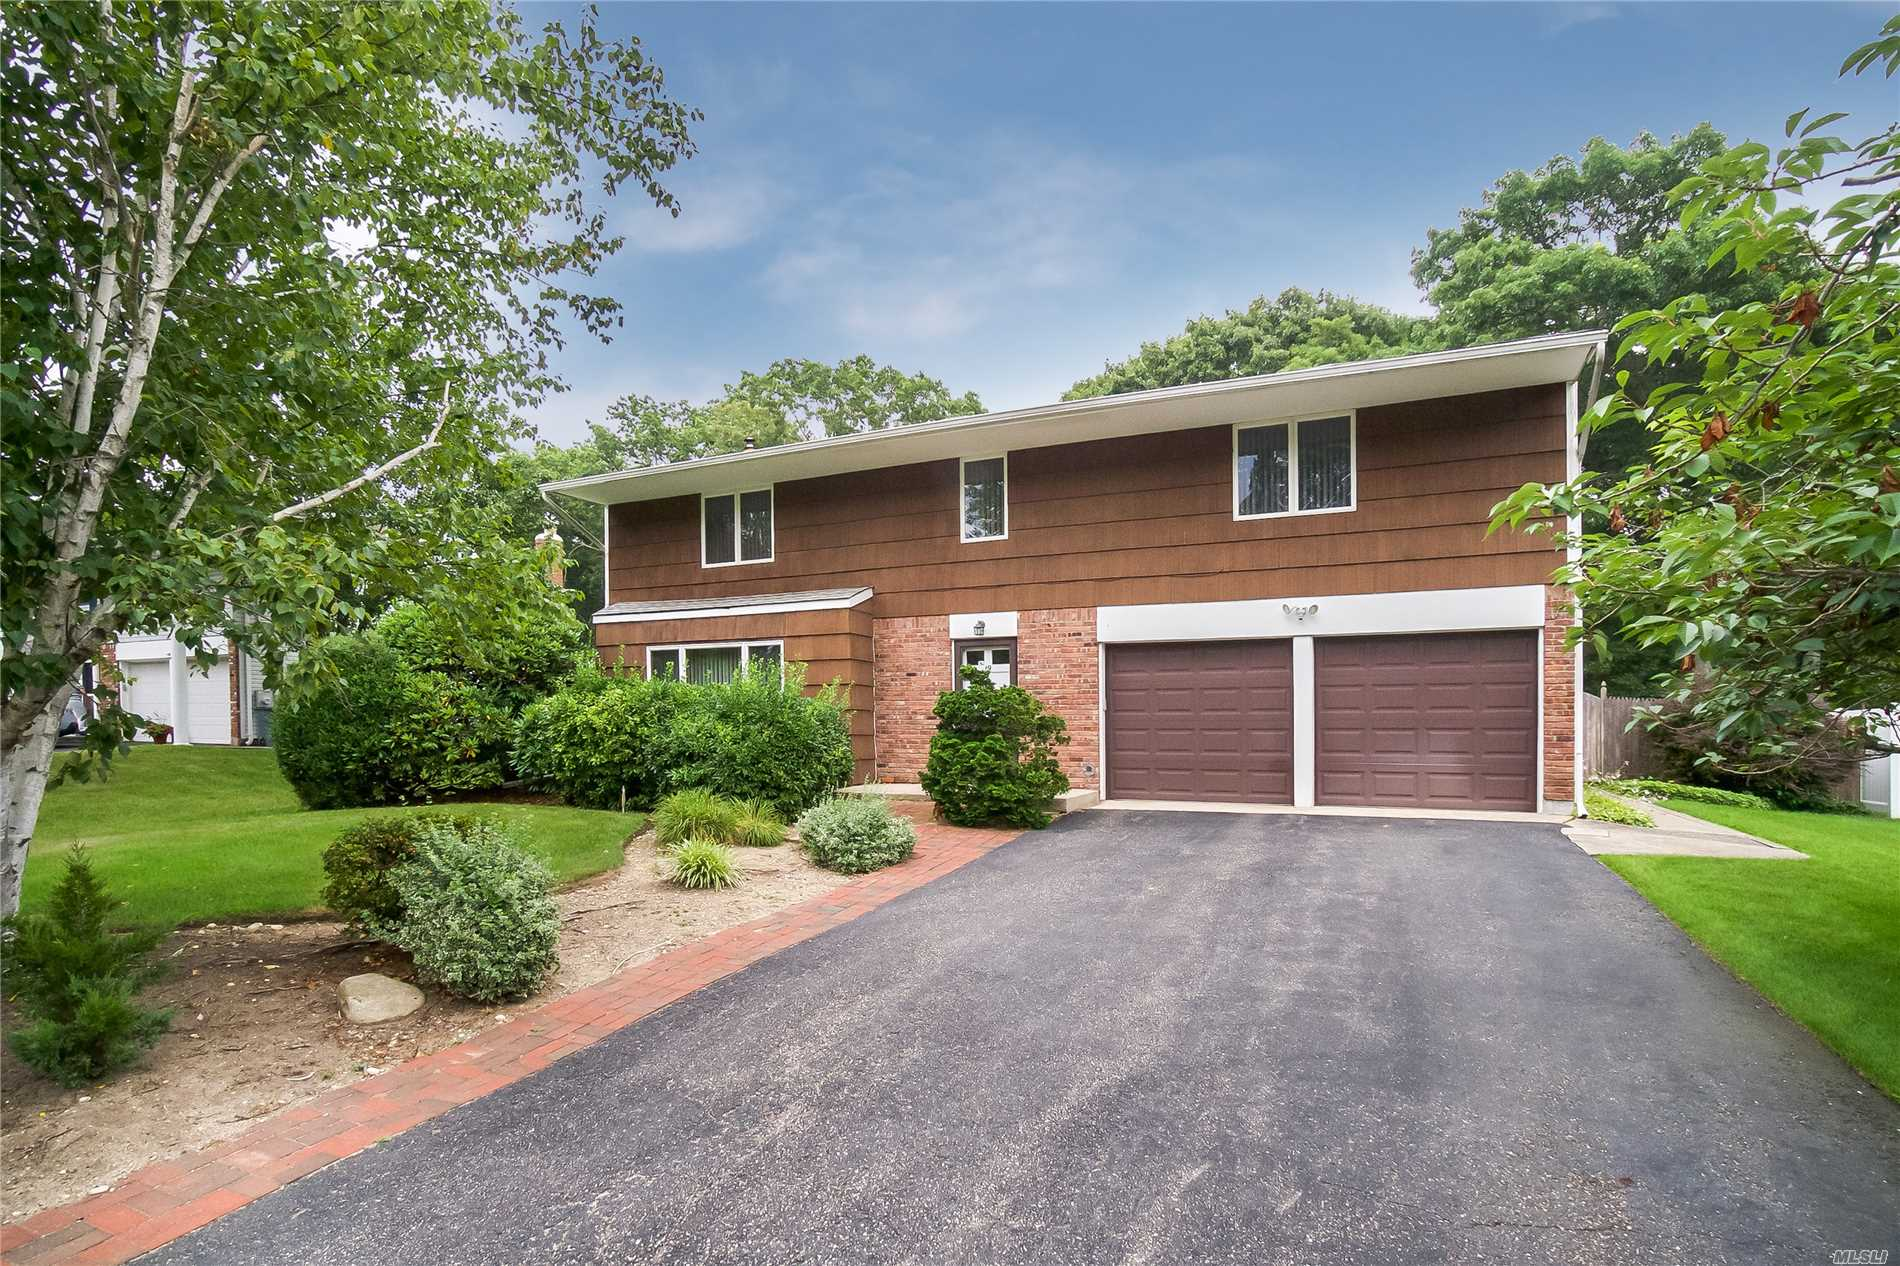 19 Homestead Cir - Hauppauge, New York